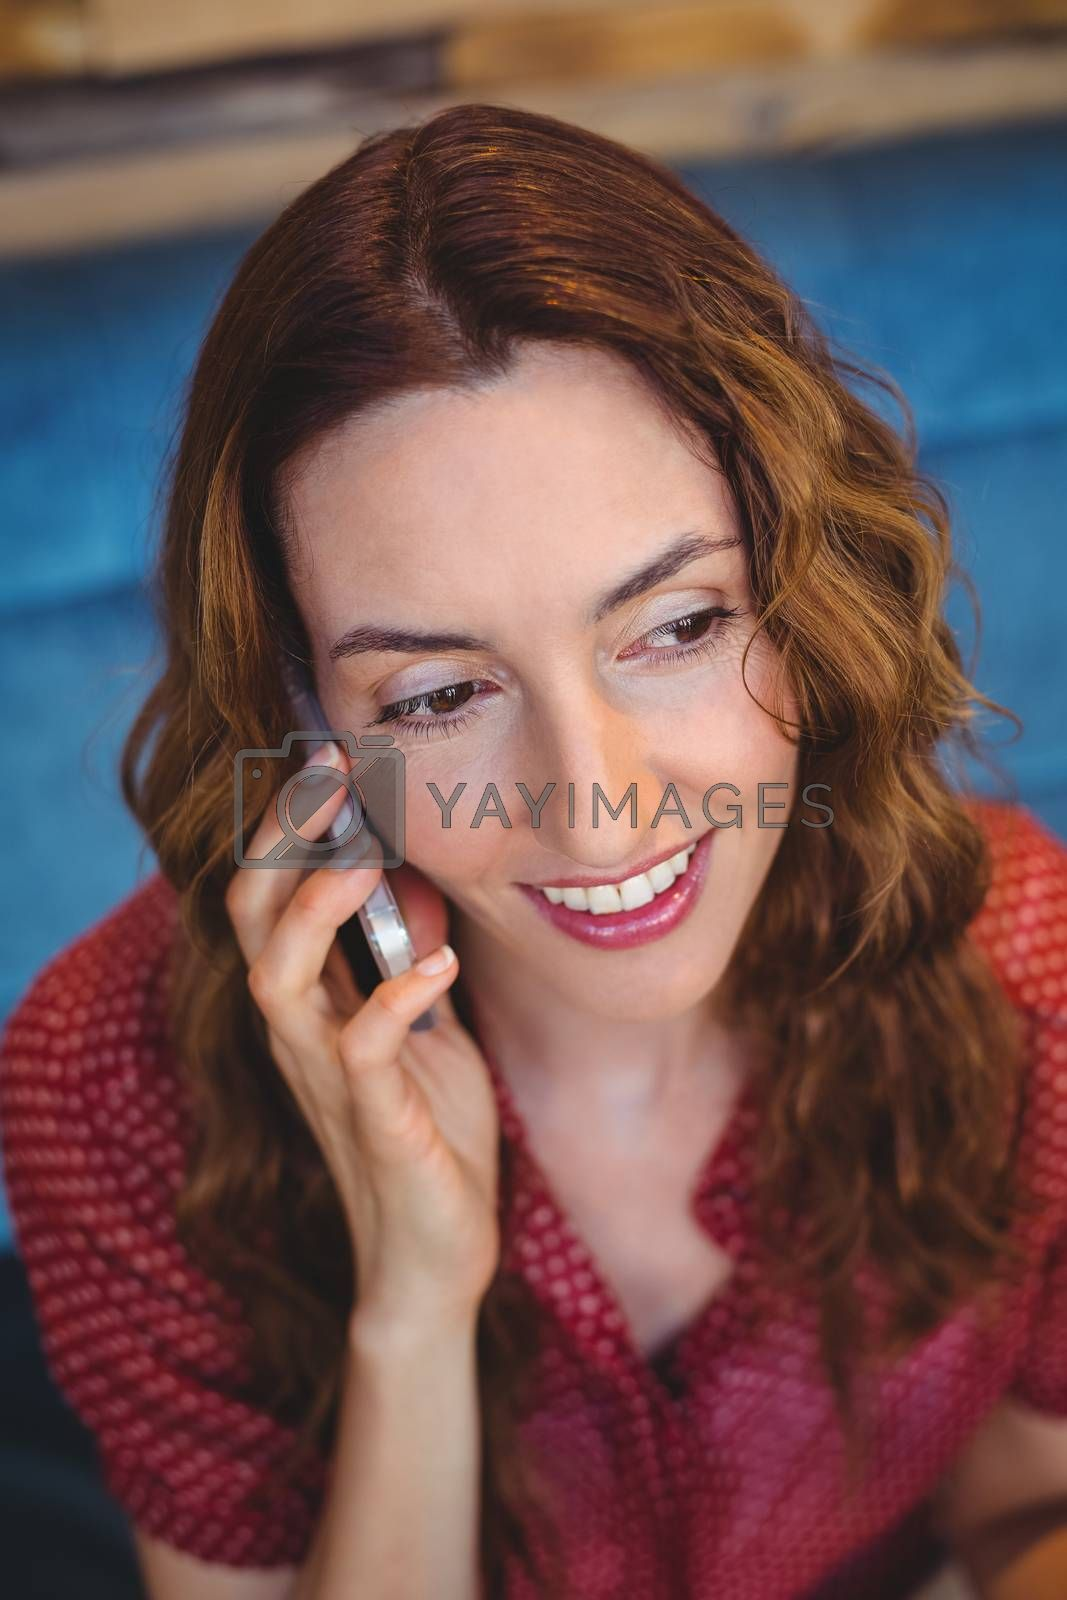 Royalty free image of Woman using her mobile phone by Wavebreakmedia